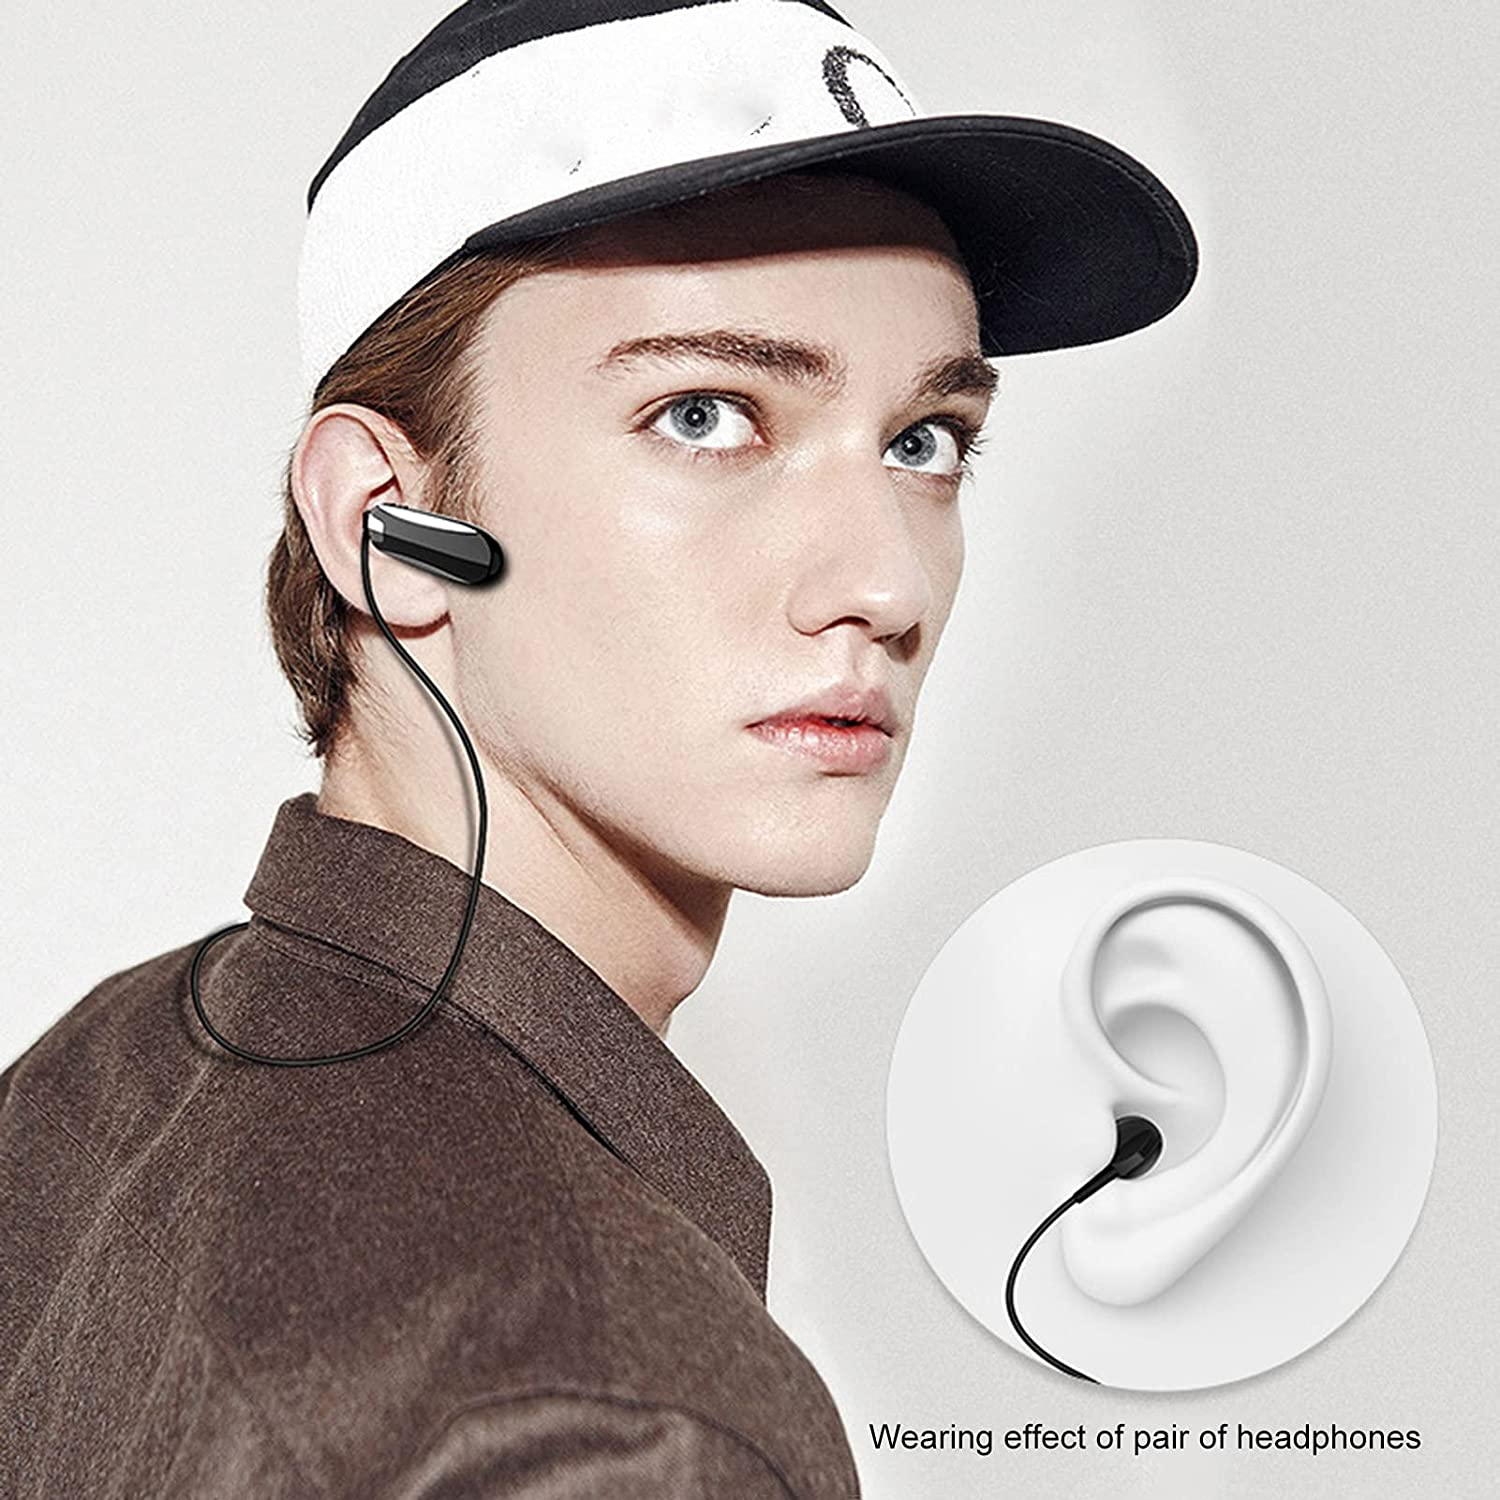 OCUhome True Wireless Earbuds, Bluetooth Headphones, X8 Earphone Bluetooth 5.0 Noise Reduction Mini Wireless Earpieces for Phone White